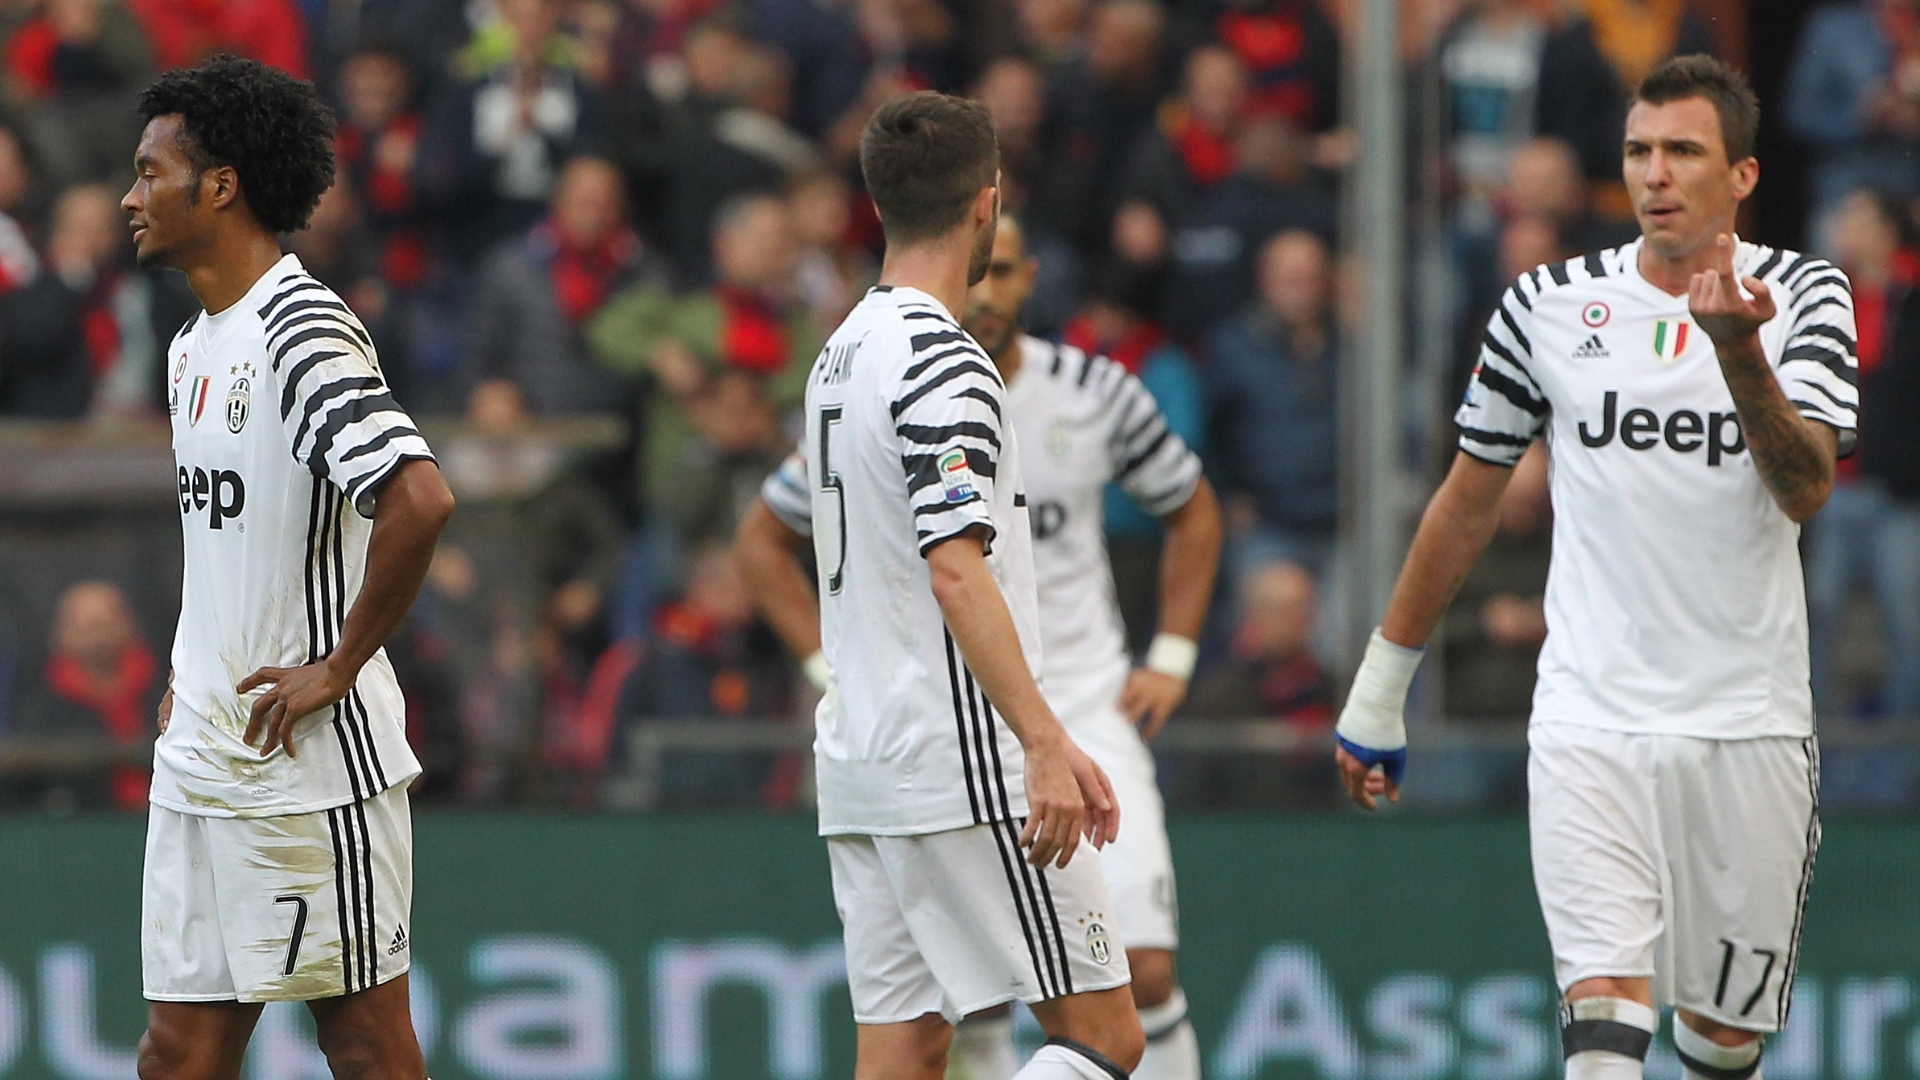 http://images.performgroup.com/di/library/GOAL_INTERNATIONAL/99/23/juventus-downtrodden-vs-genoa_hr9e25jwgakd1o6oraq7ceue0.jpg?t=-1501832904